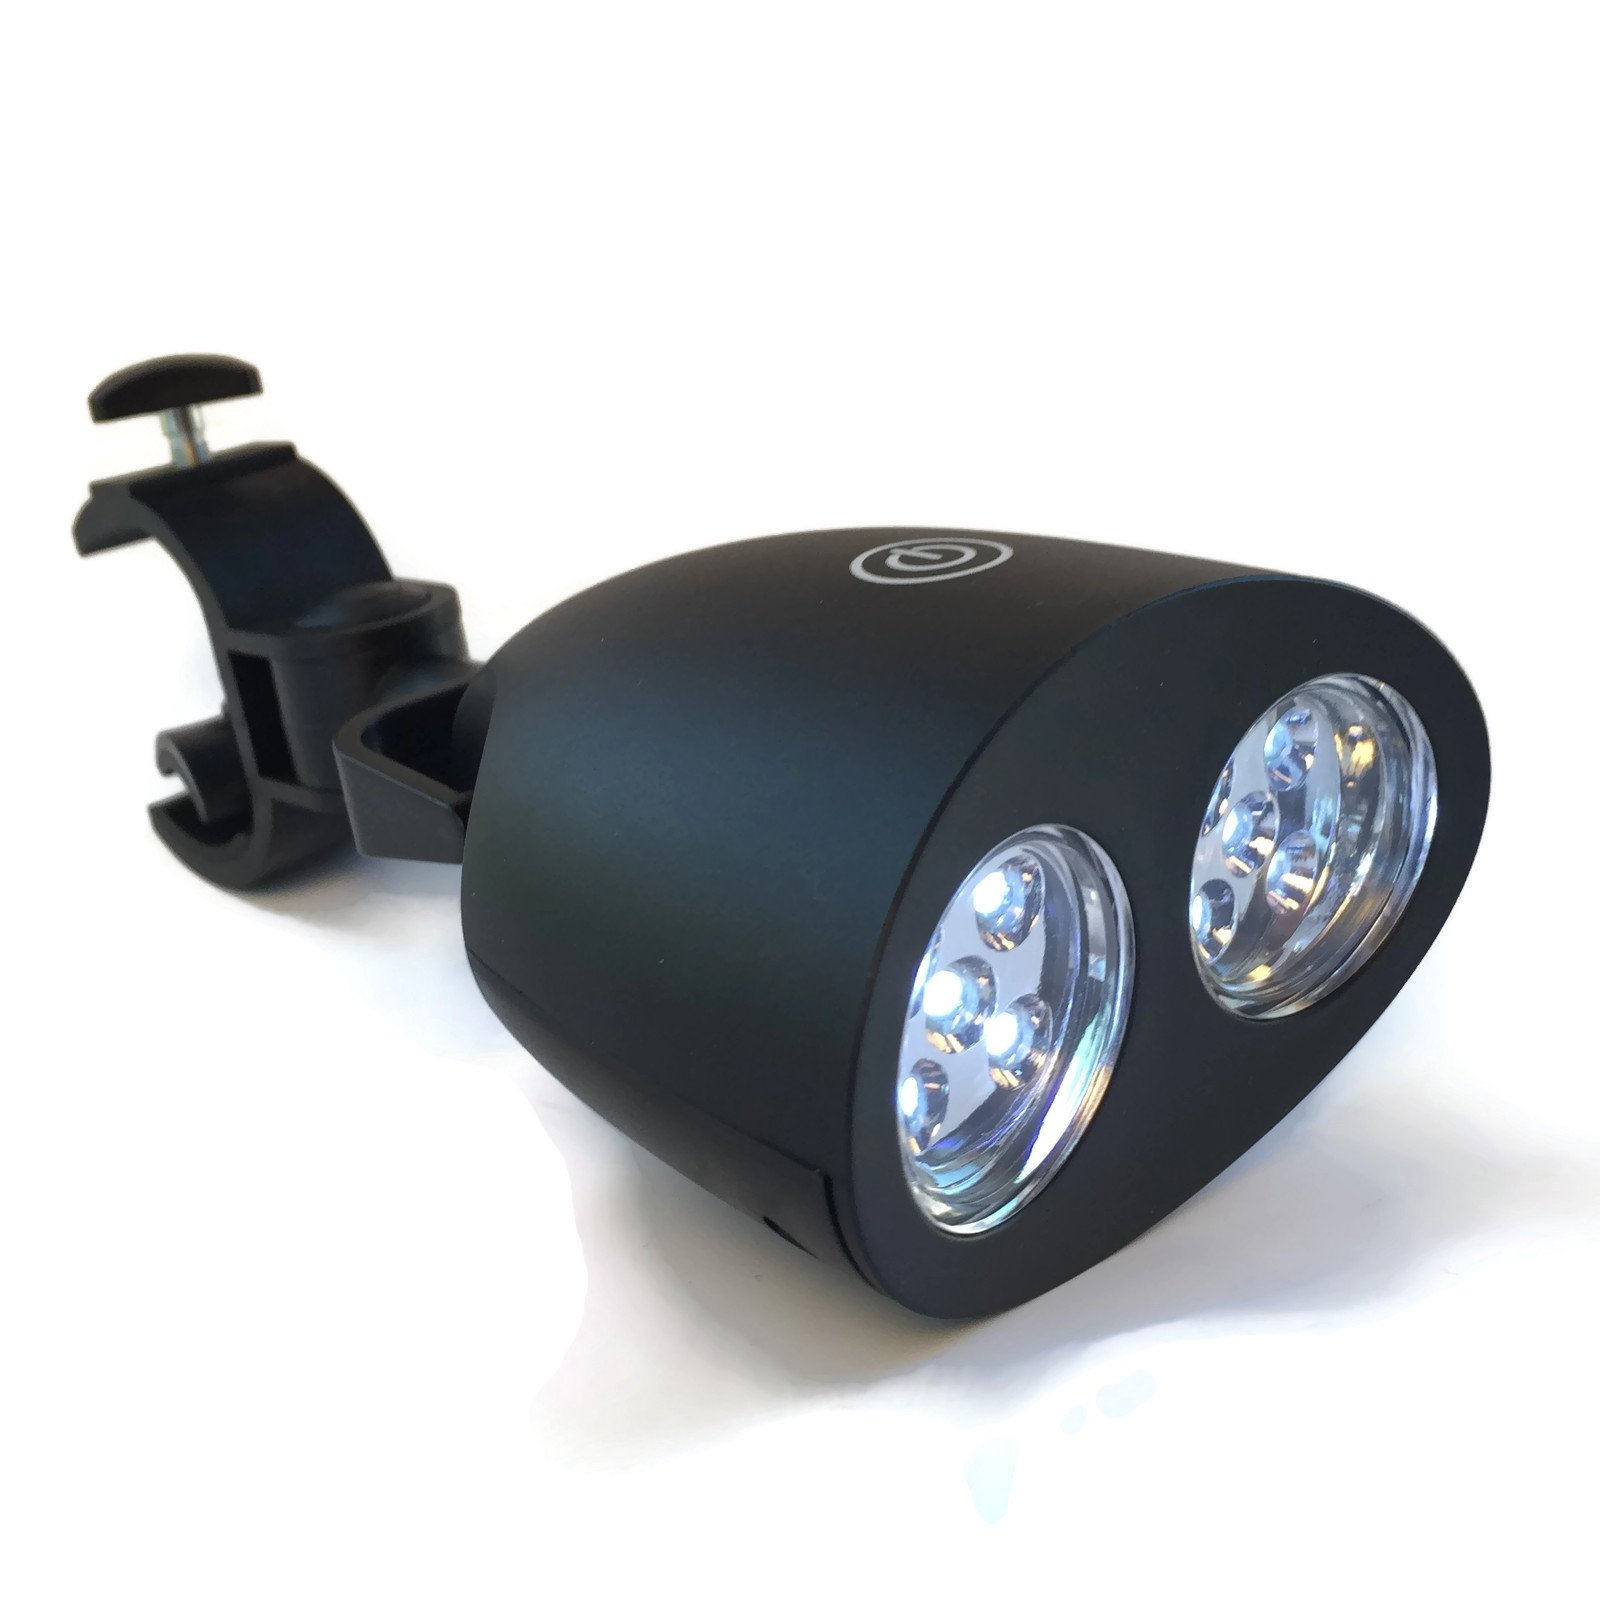 Barbecue Grill Light - Super Bright, Heat and Weather Resistant, Durable, Versatile by Heavenly Simple